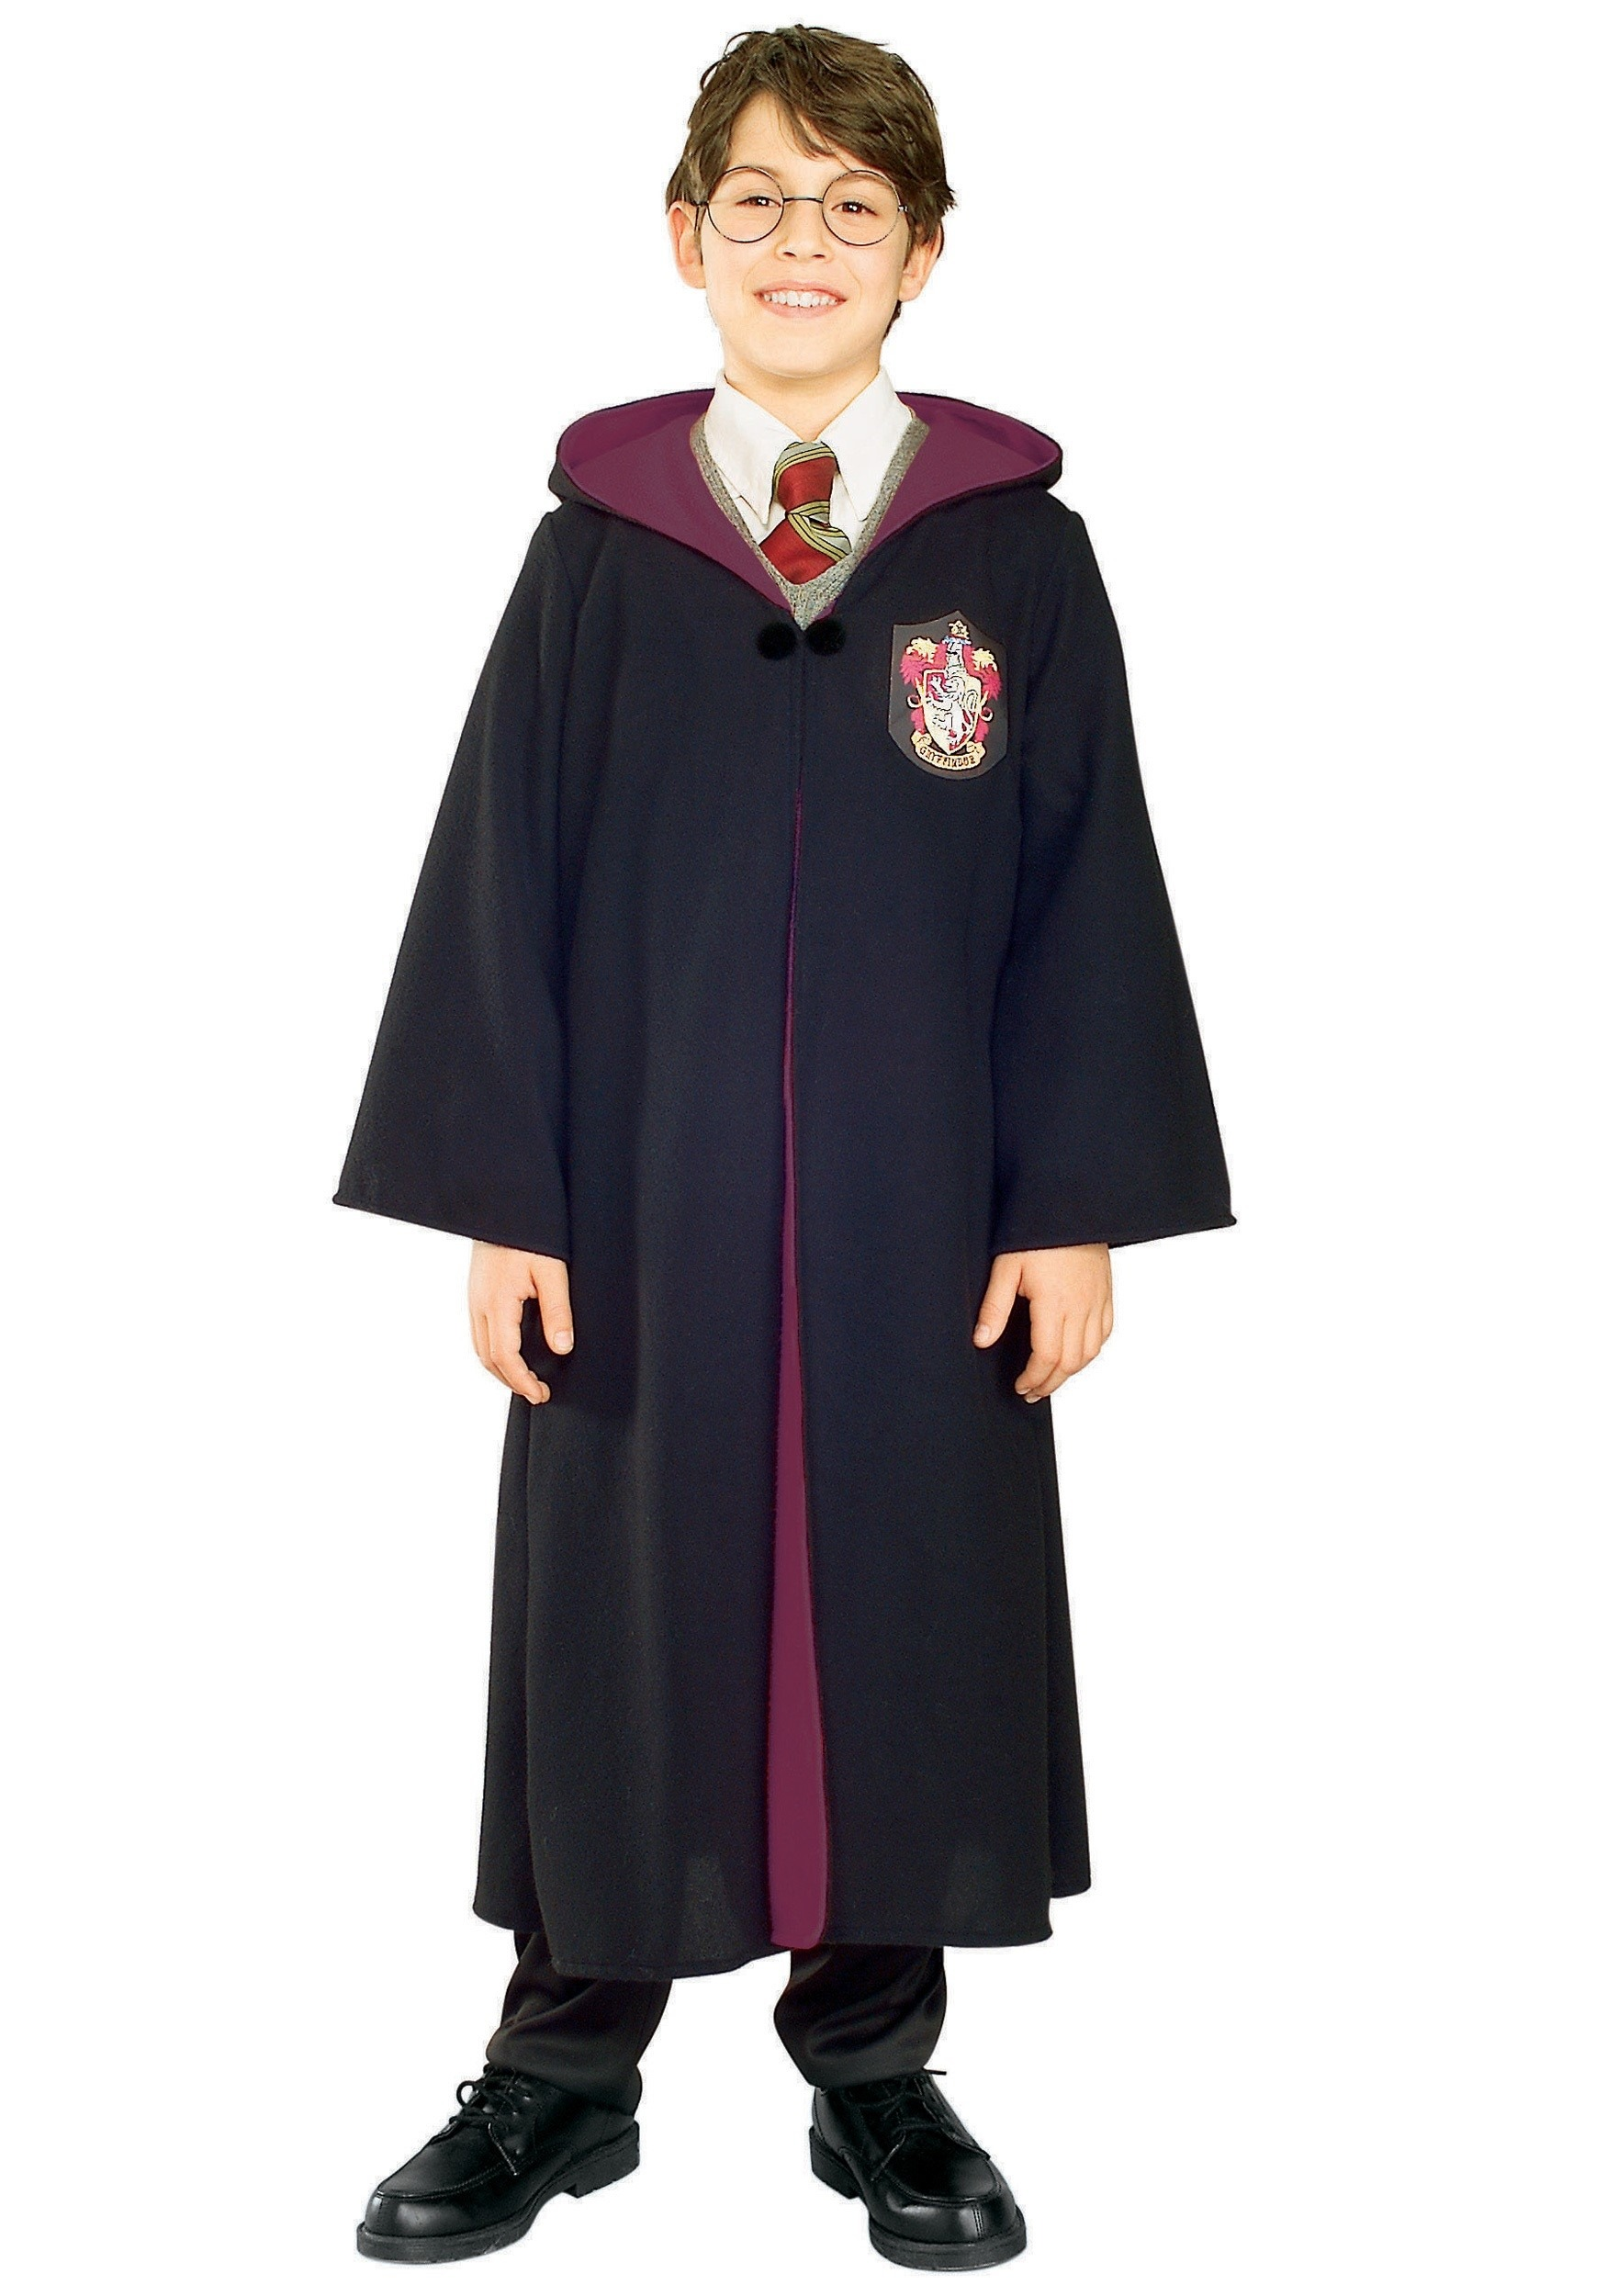 Child Deluxe Ron Weasley Costume  sc 1 st  Halloween Costumes & Harry Potter Costumes u0026 Accessories - HalloweenCostumes.com